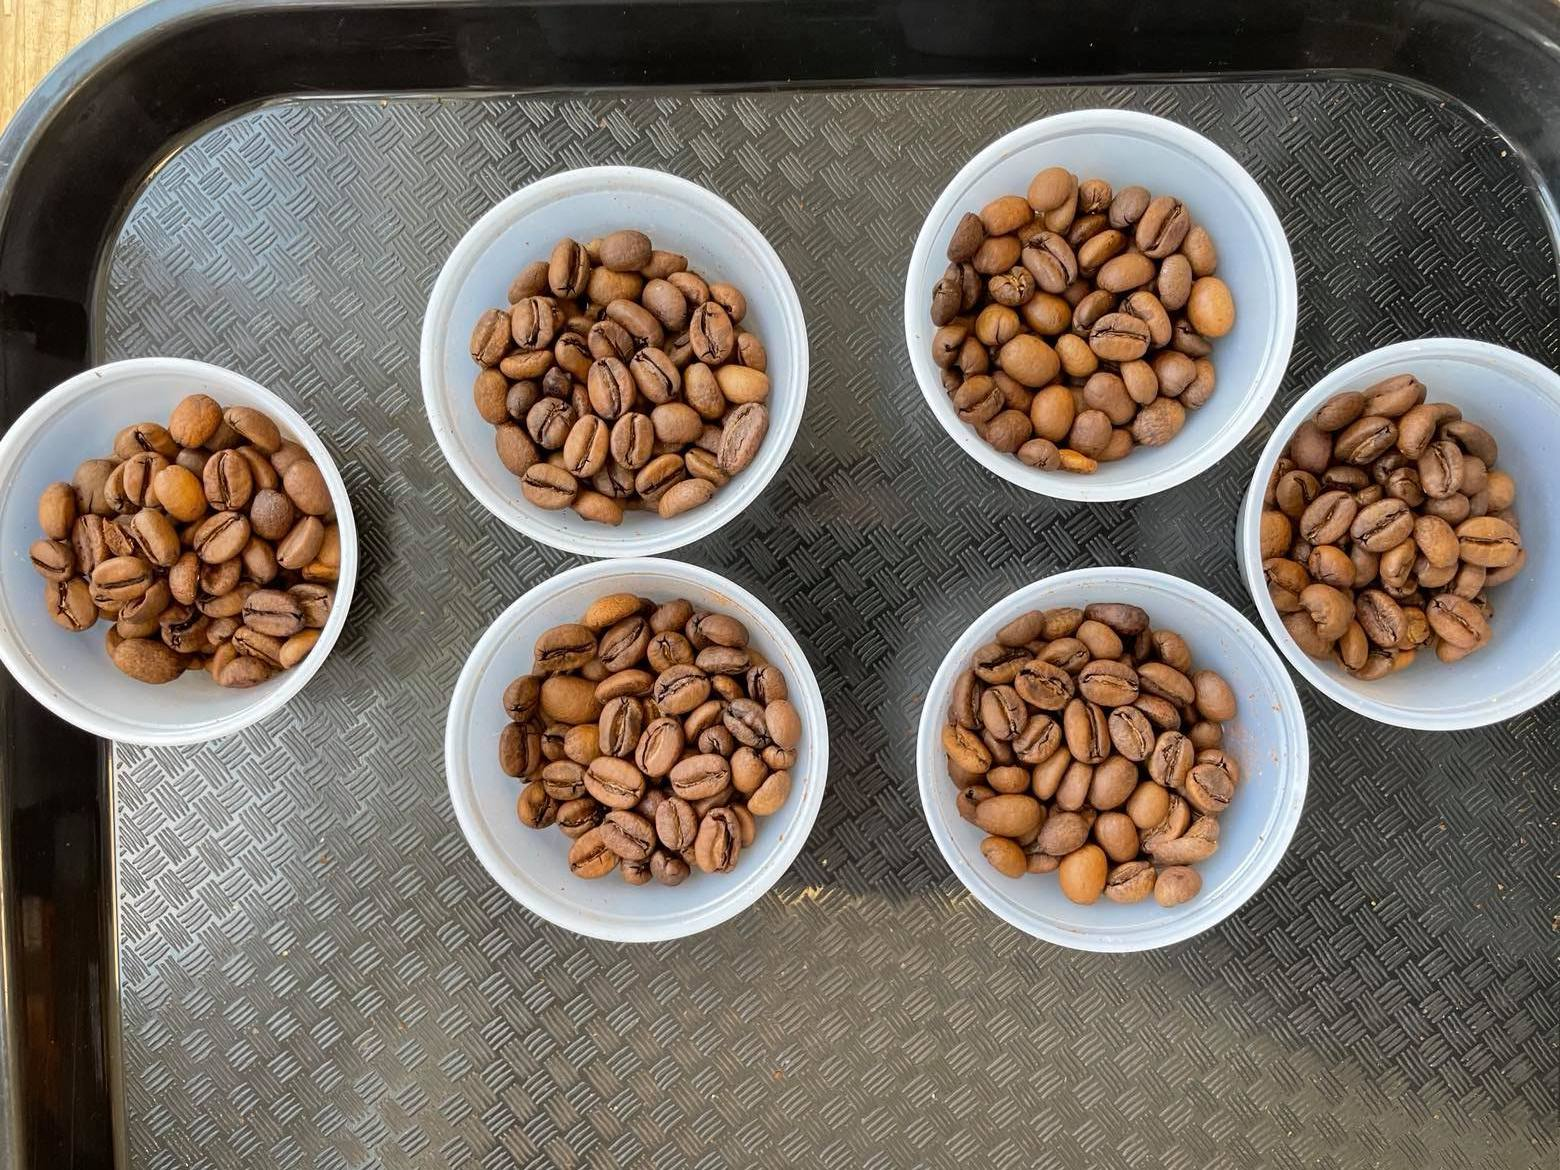 Various cups of lightly roasted coffee beans in cups.